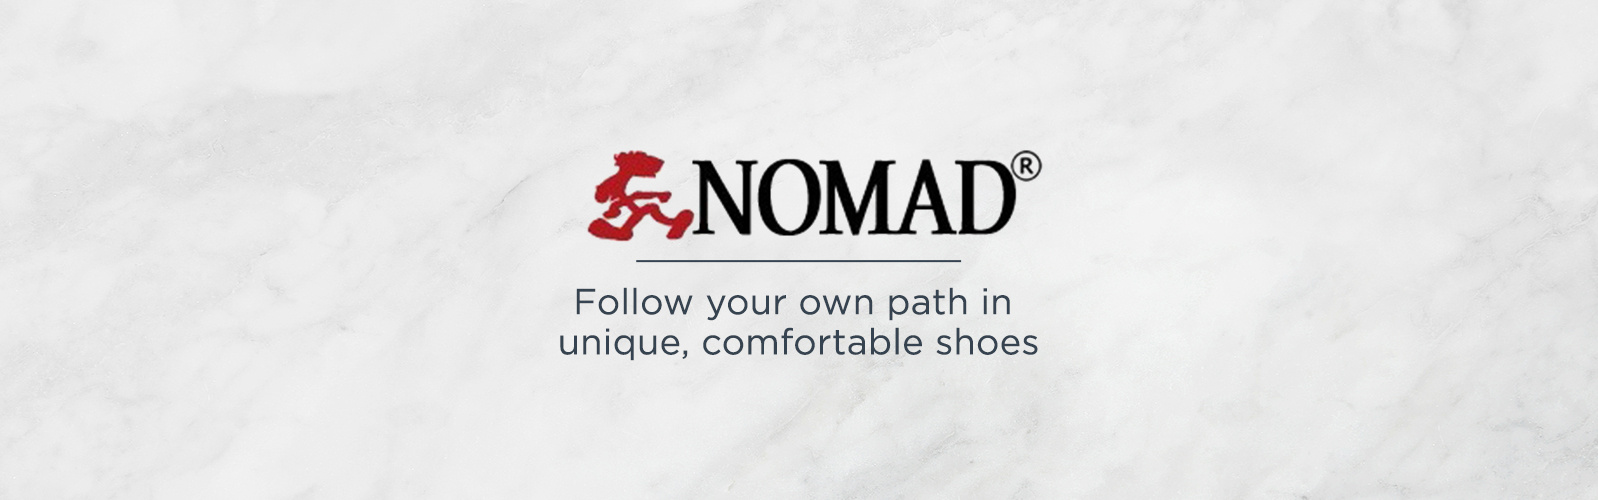 Nomad  — Follow your own path in unique, comfortable shoes